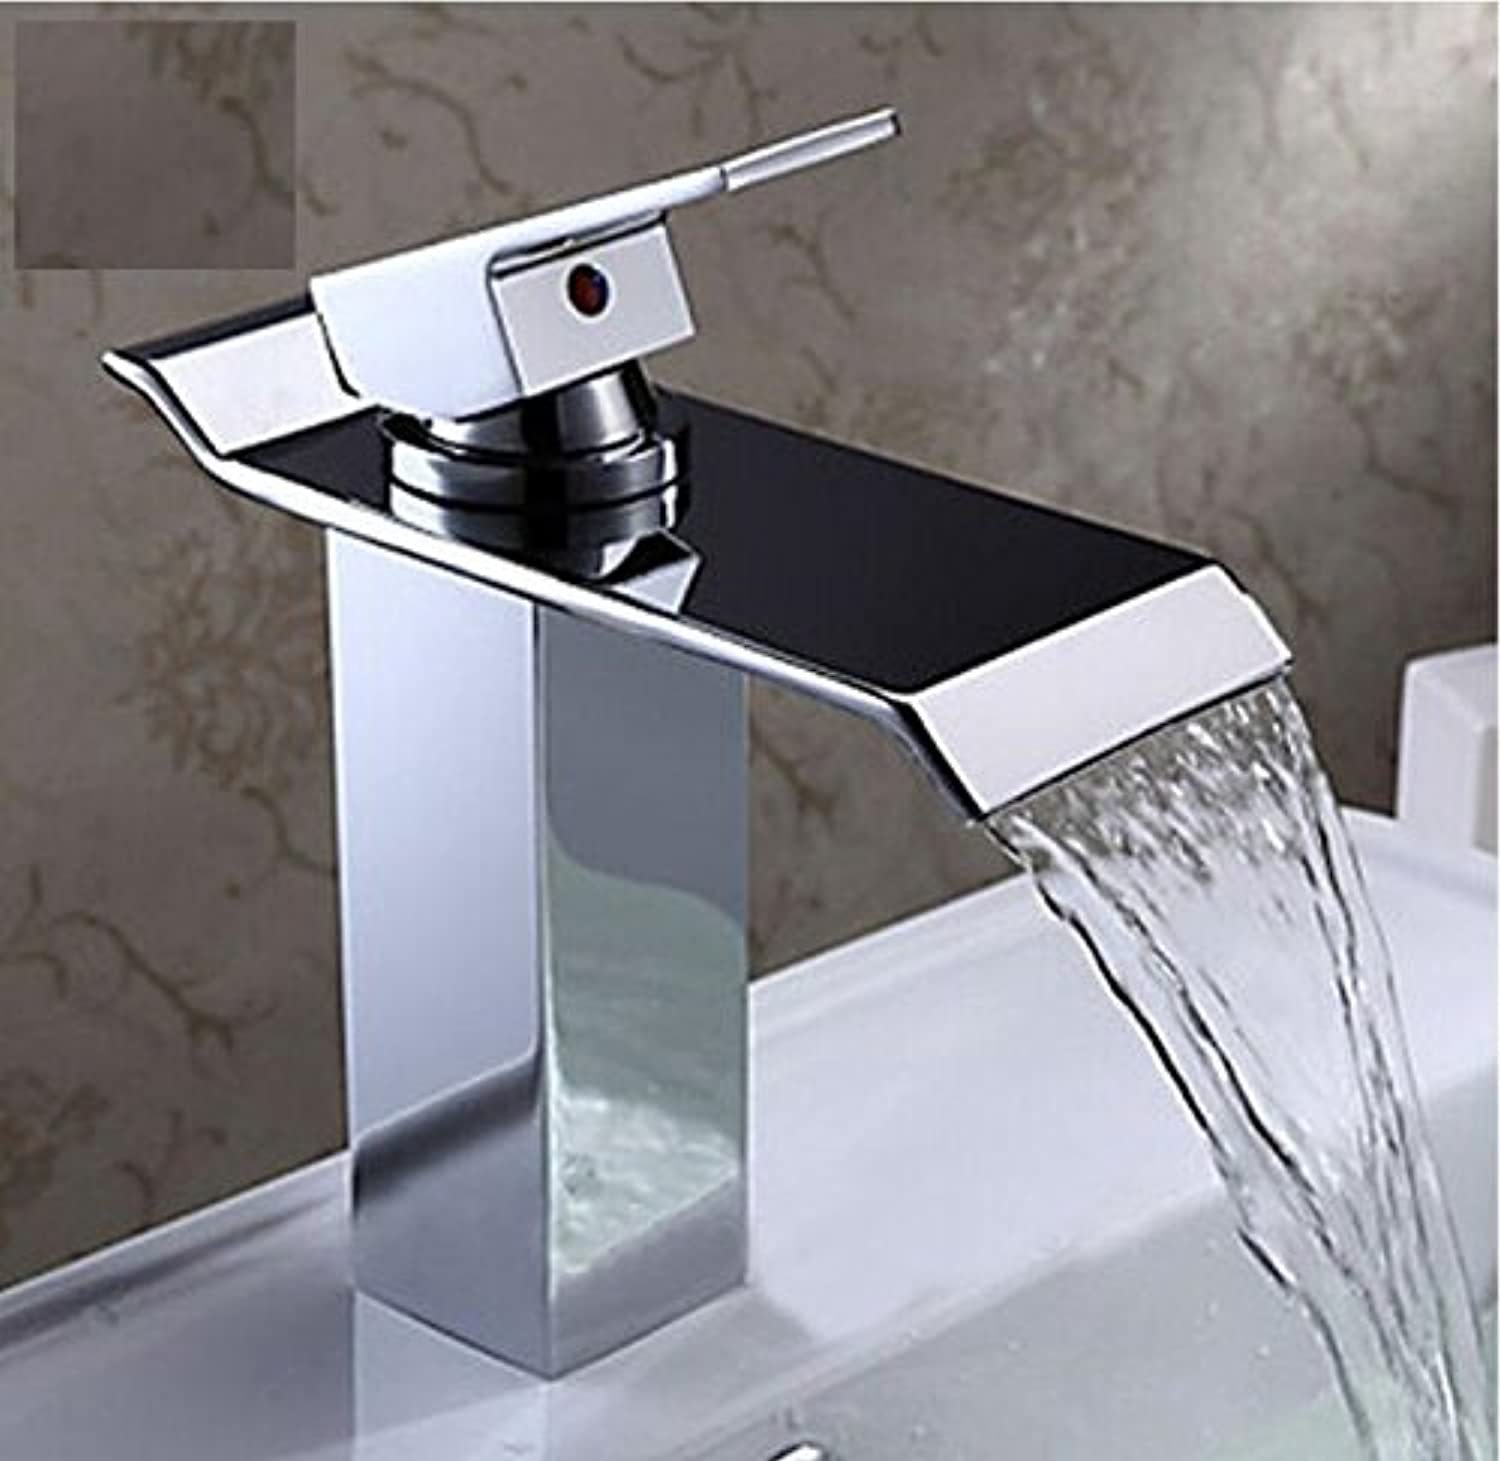 Aawang New Brass Square Chrome Finish Waterfall Tall Countertop Basin Bathroom Sink Faucet Mixer Tap Single Handle